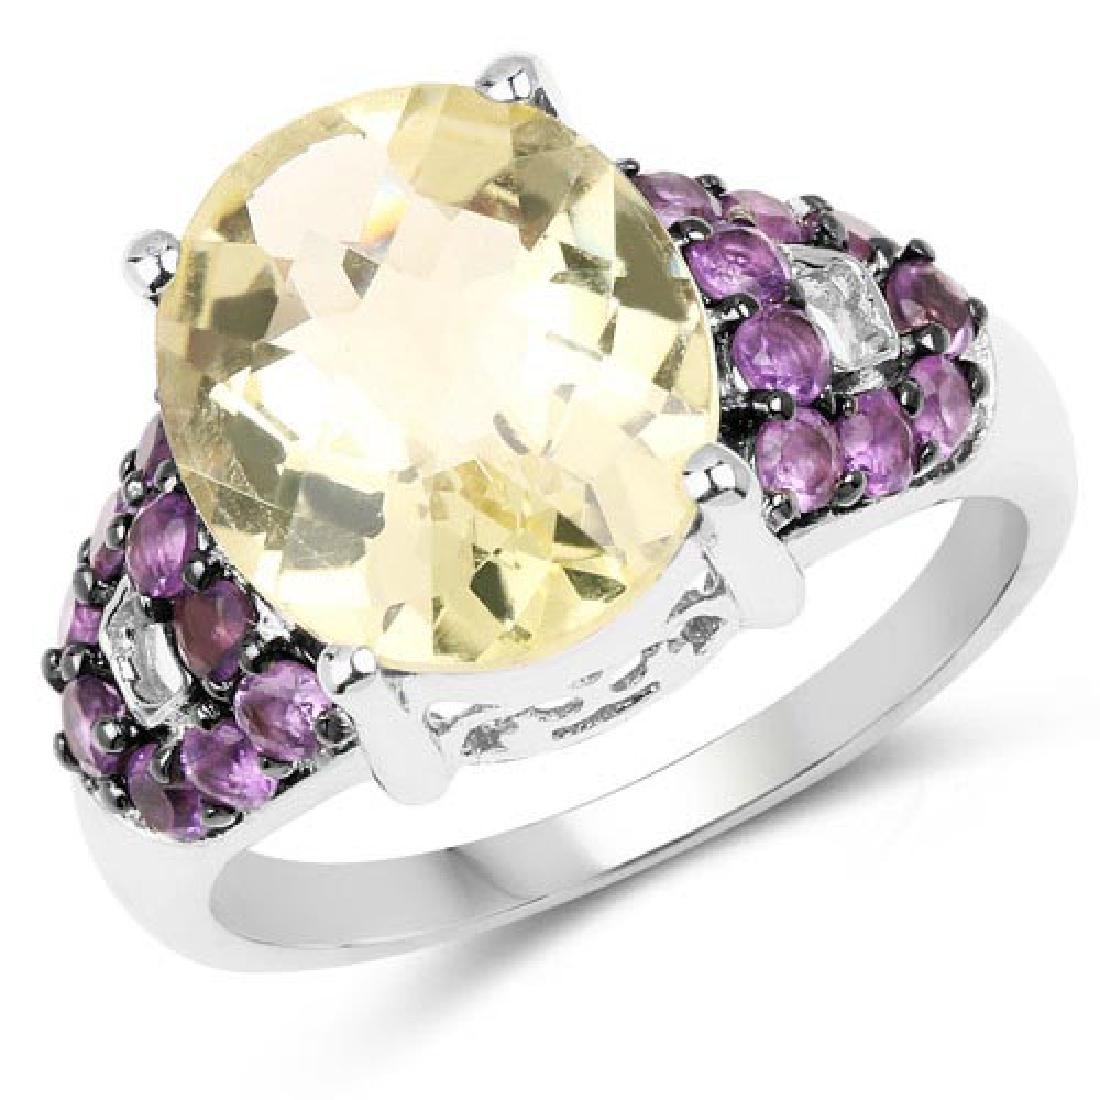 4.61 Carat Genuine Lemon Quartz and Amethyst .925 Sterl